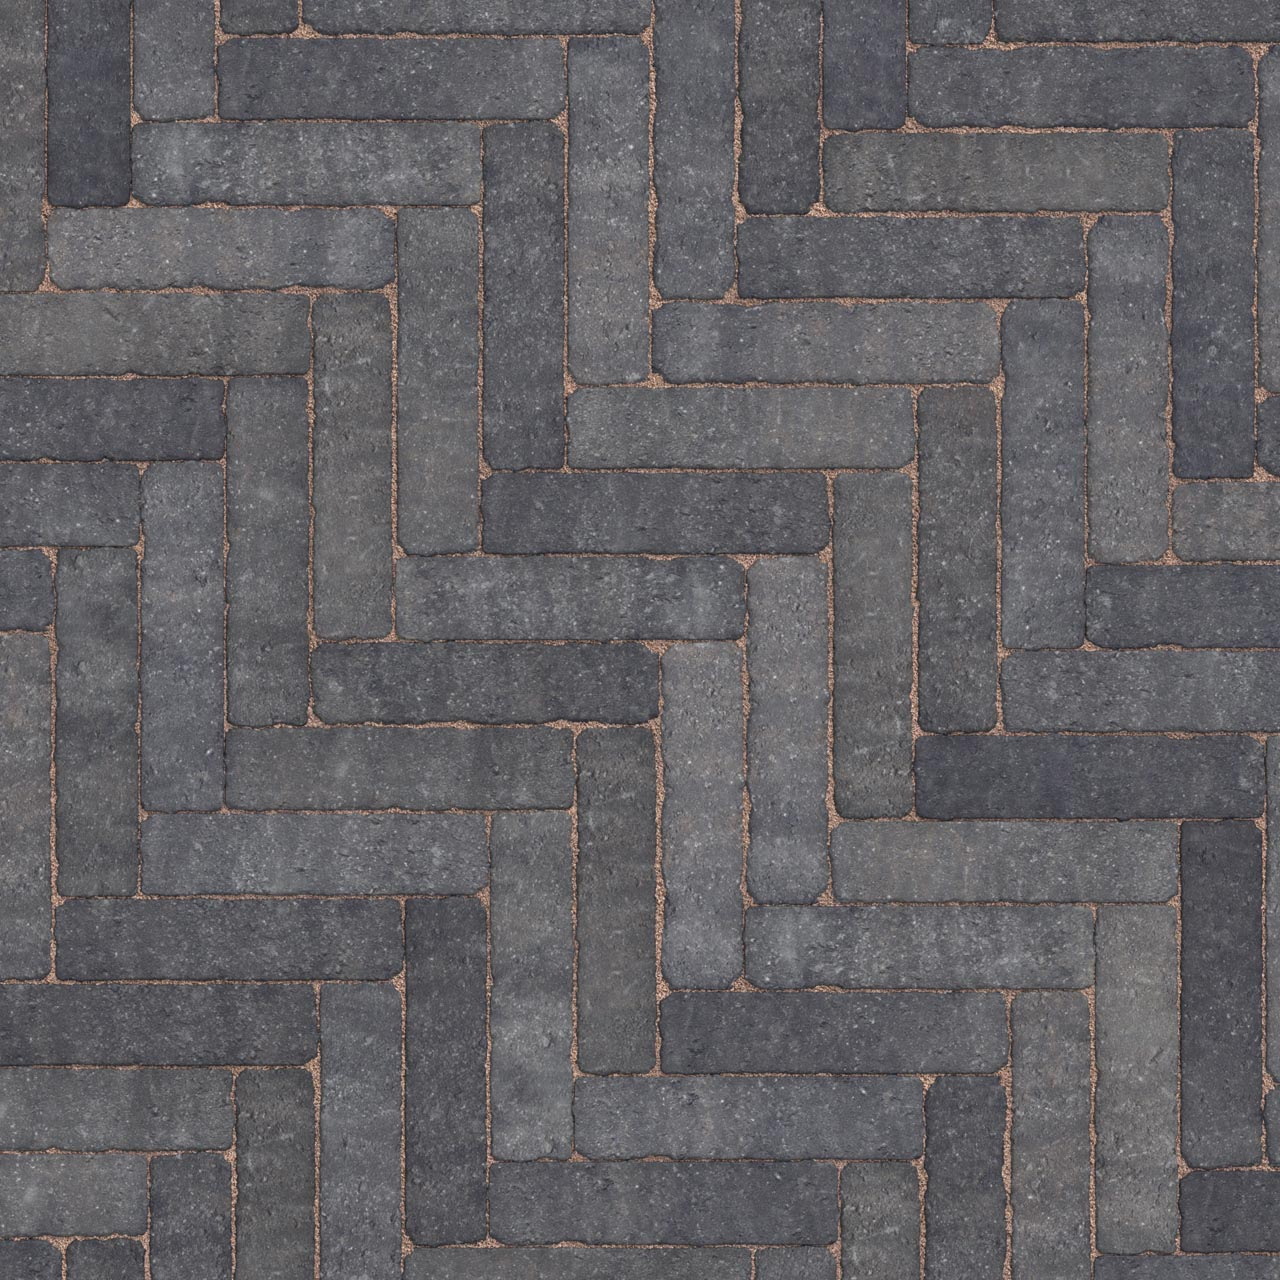 Trident Linear Paving 200mm x 50mm x 60mm Charcoal image 0